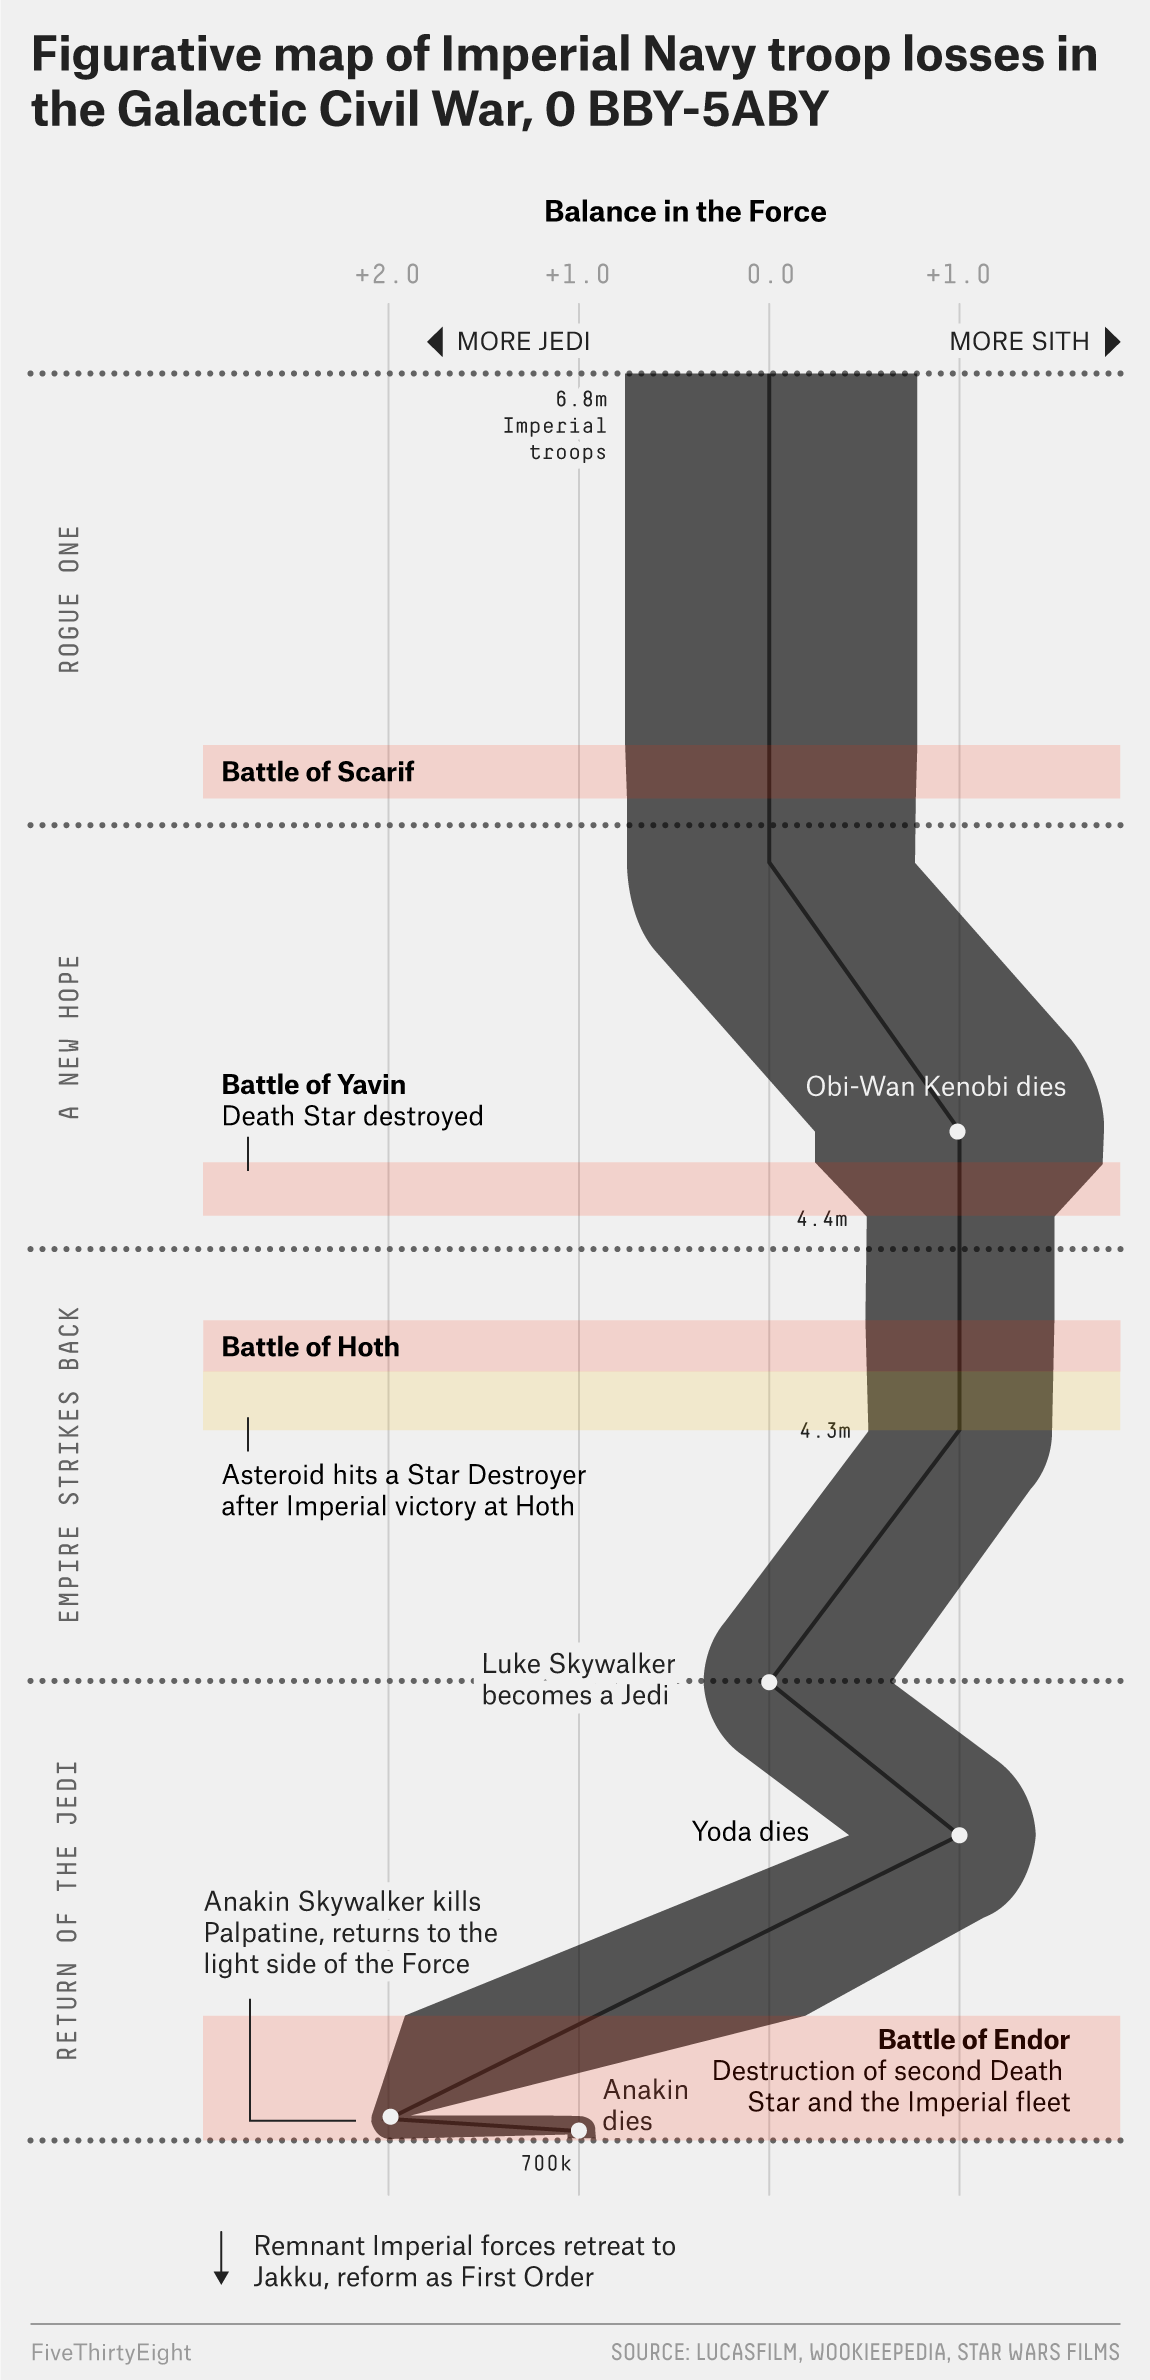 Quelle:   https://fivethirtyeight.com/features/star-wars-in-one-chart/